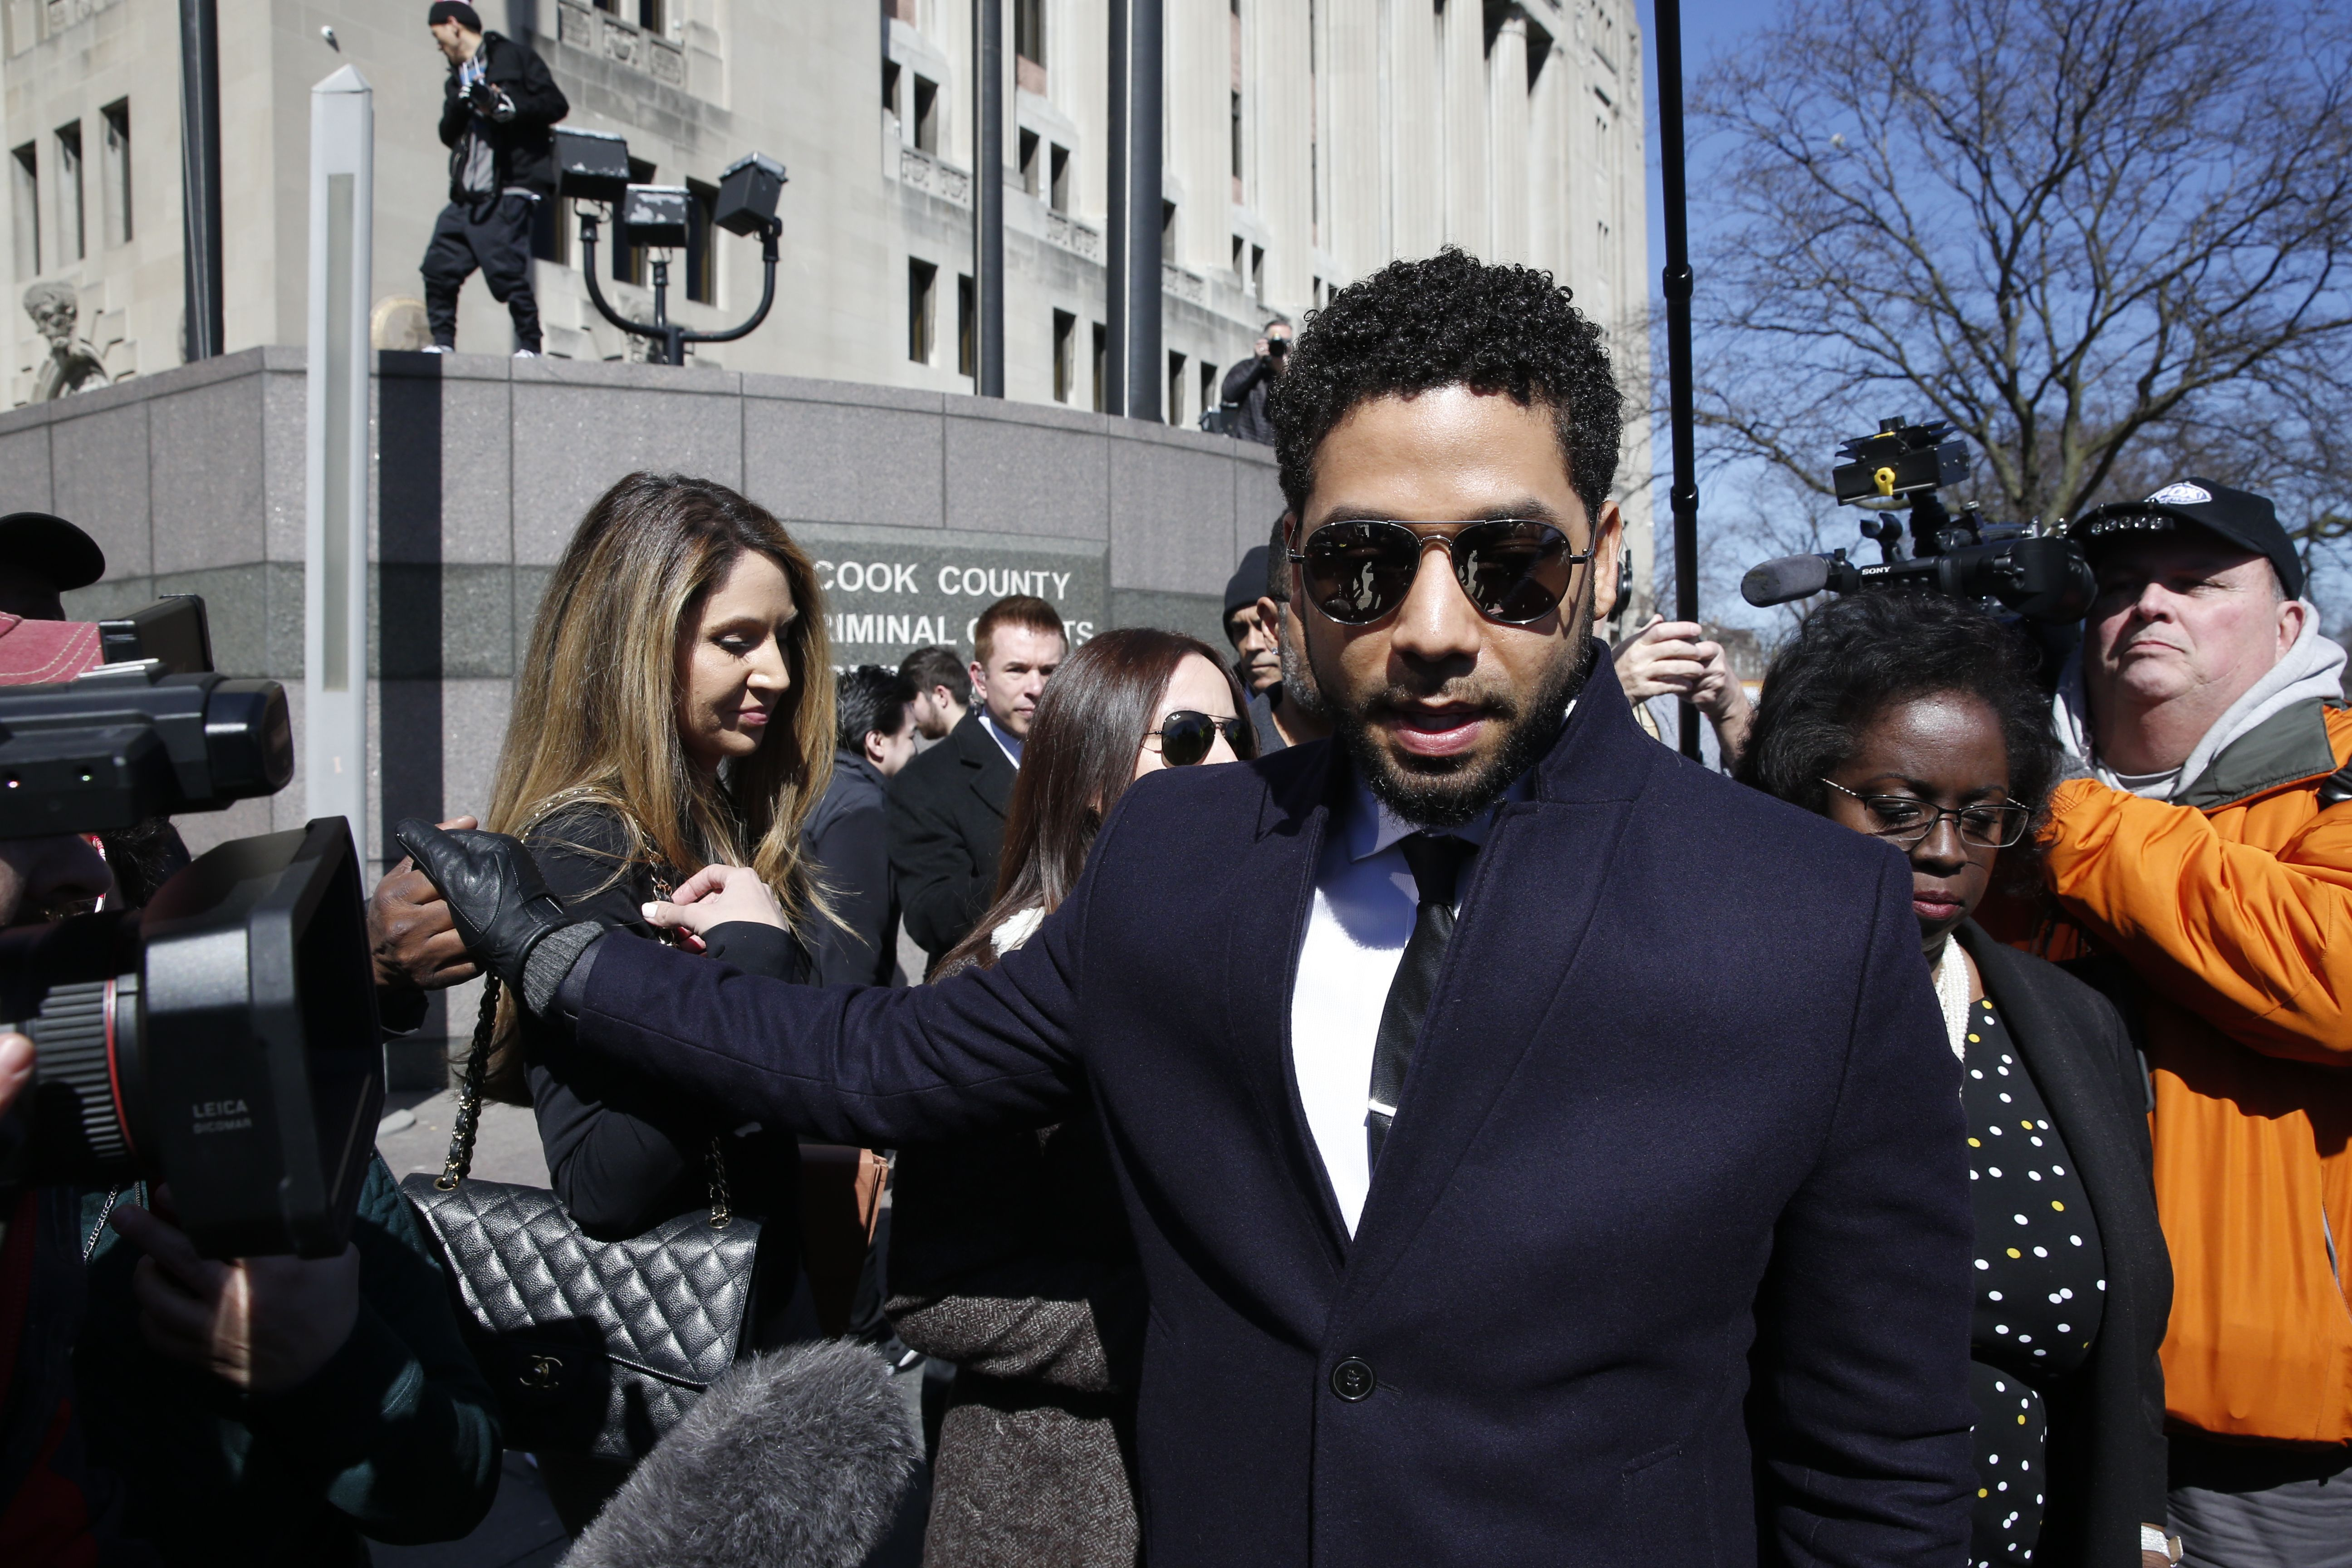 Jussie Smollett at the Cook County Criminal Court in Chicago | Source: Getty Images/GlobalImagesUkraine